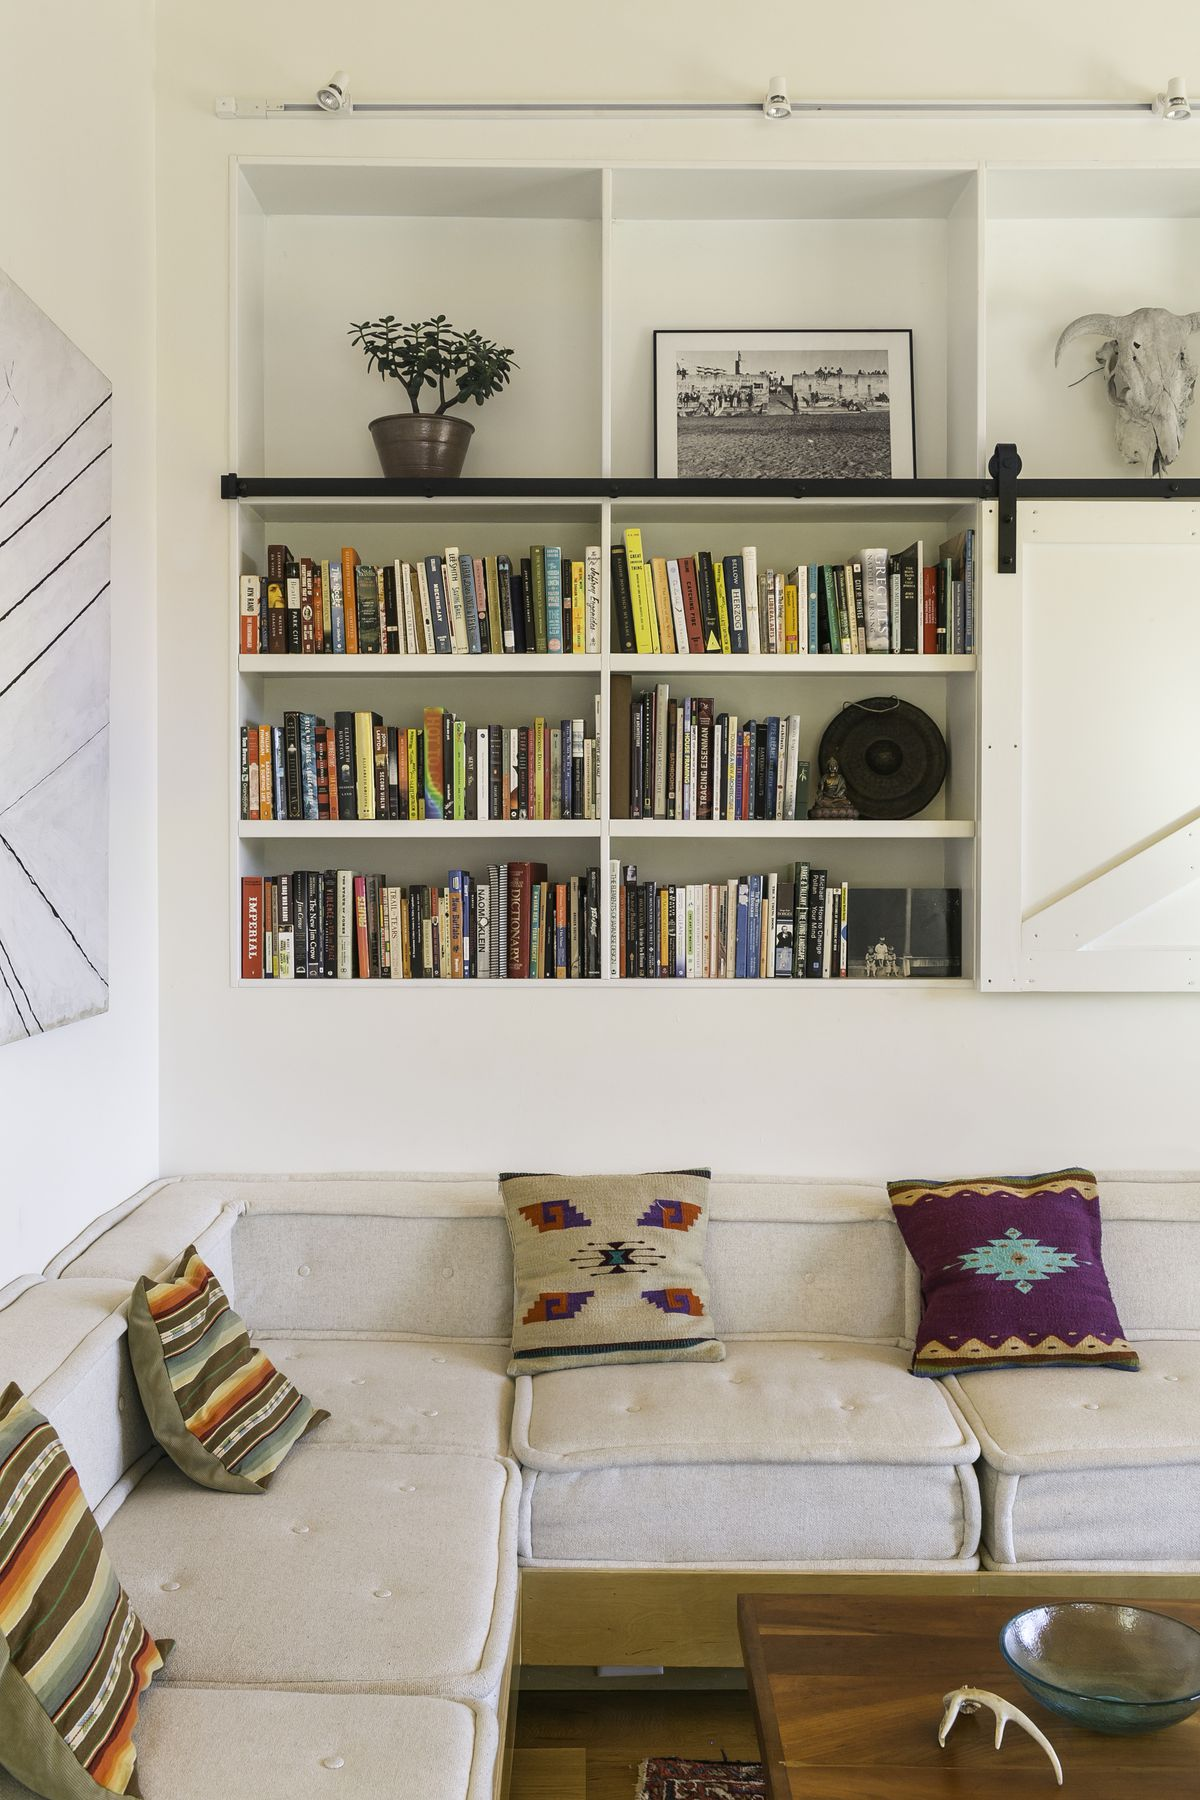 Built in bookshelf with lots of books, and a custom sofa with grey cushions and patterned pillows.